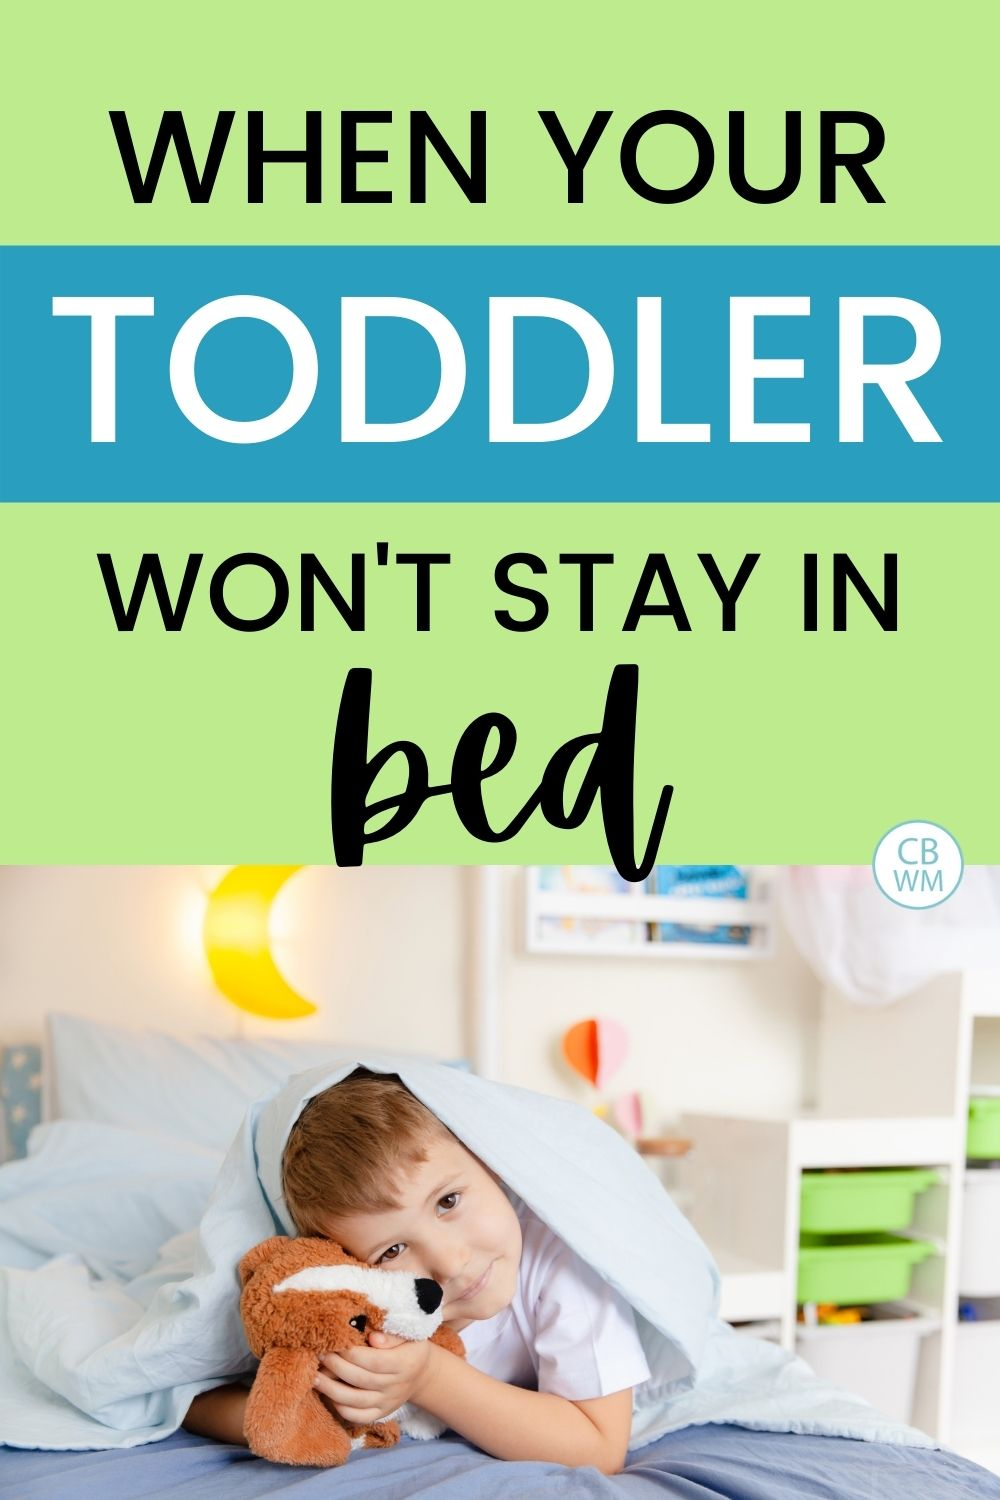 When your toddler won't stay in bed pinnable image